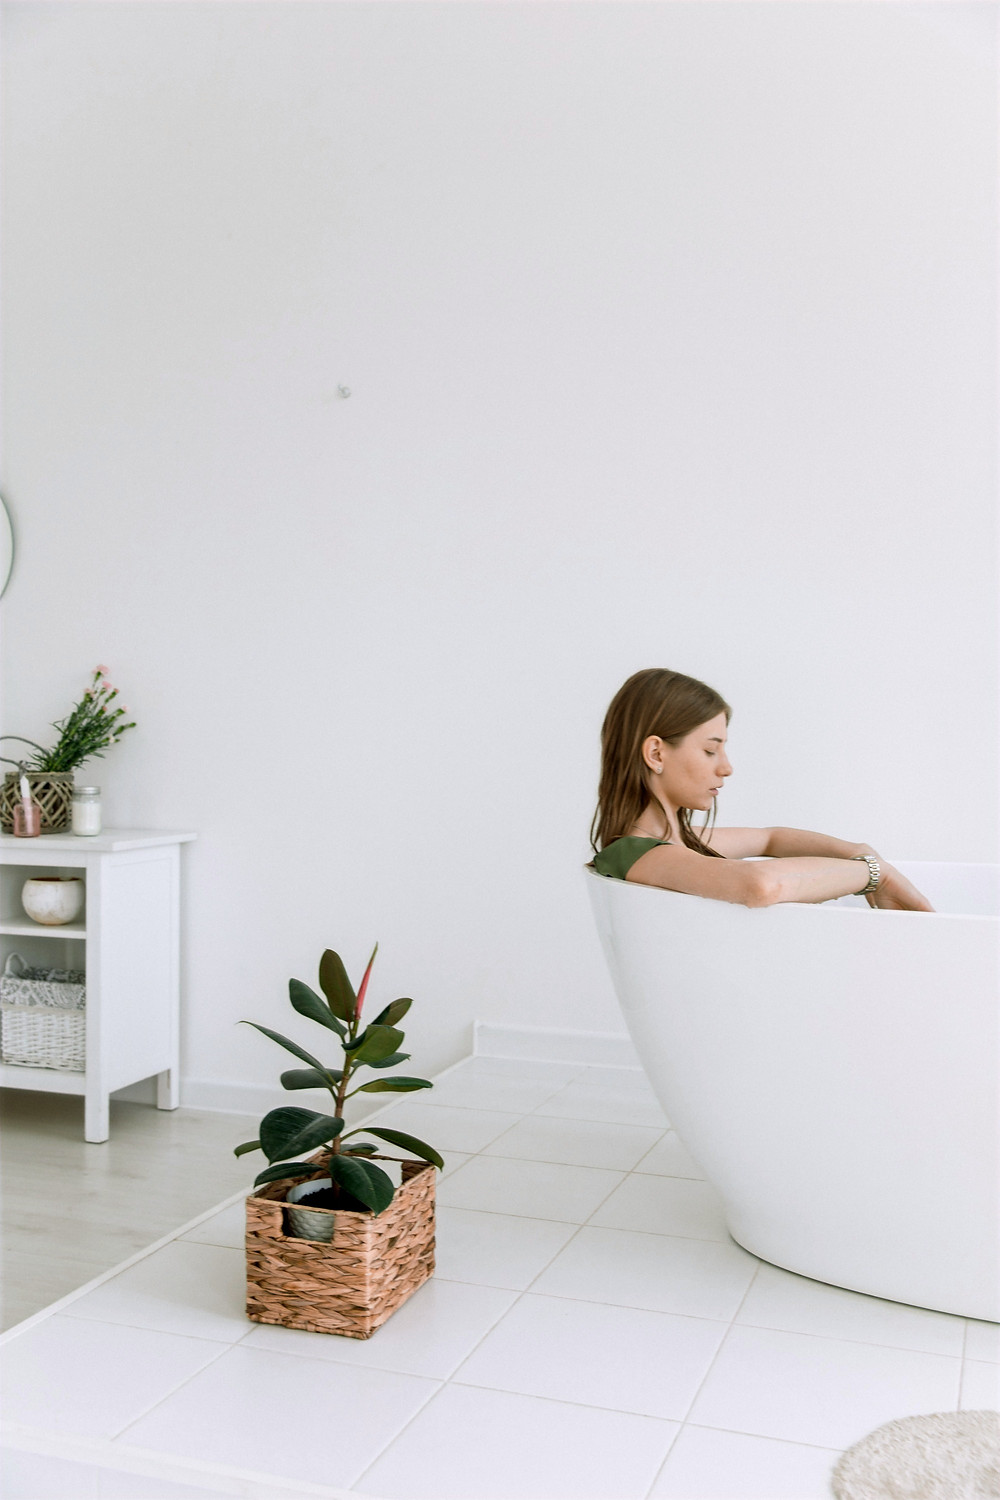 A photograph of a person sitting in a minimalist white bathtub, practicing a wellness ritual for self-compassion..